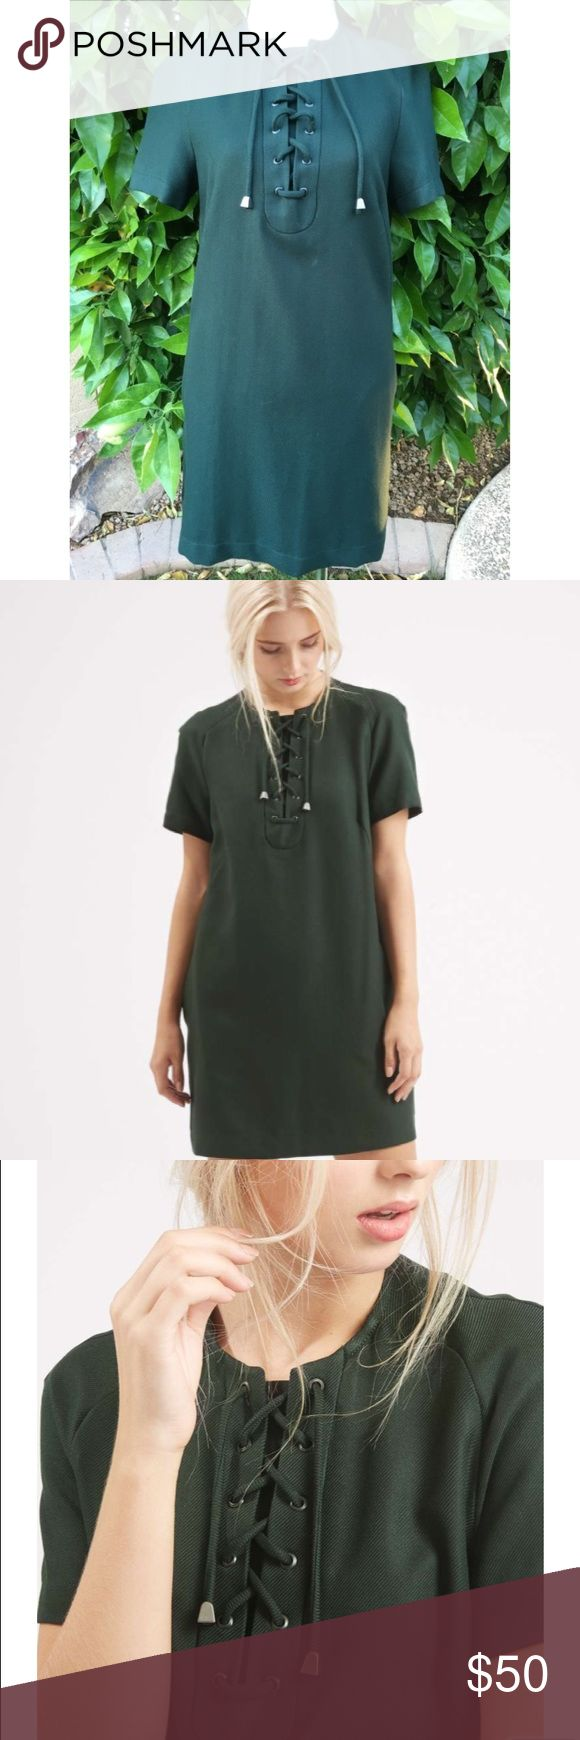 NWOT Topshop Lace-Up Tunic Dress Smock style dress in heavy twill fabric with eyelet lace up detail and concealed side pockets. Lined Topshop Dresses